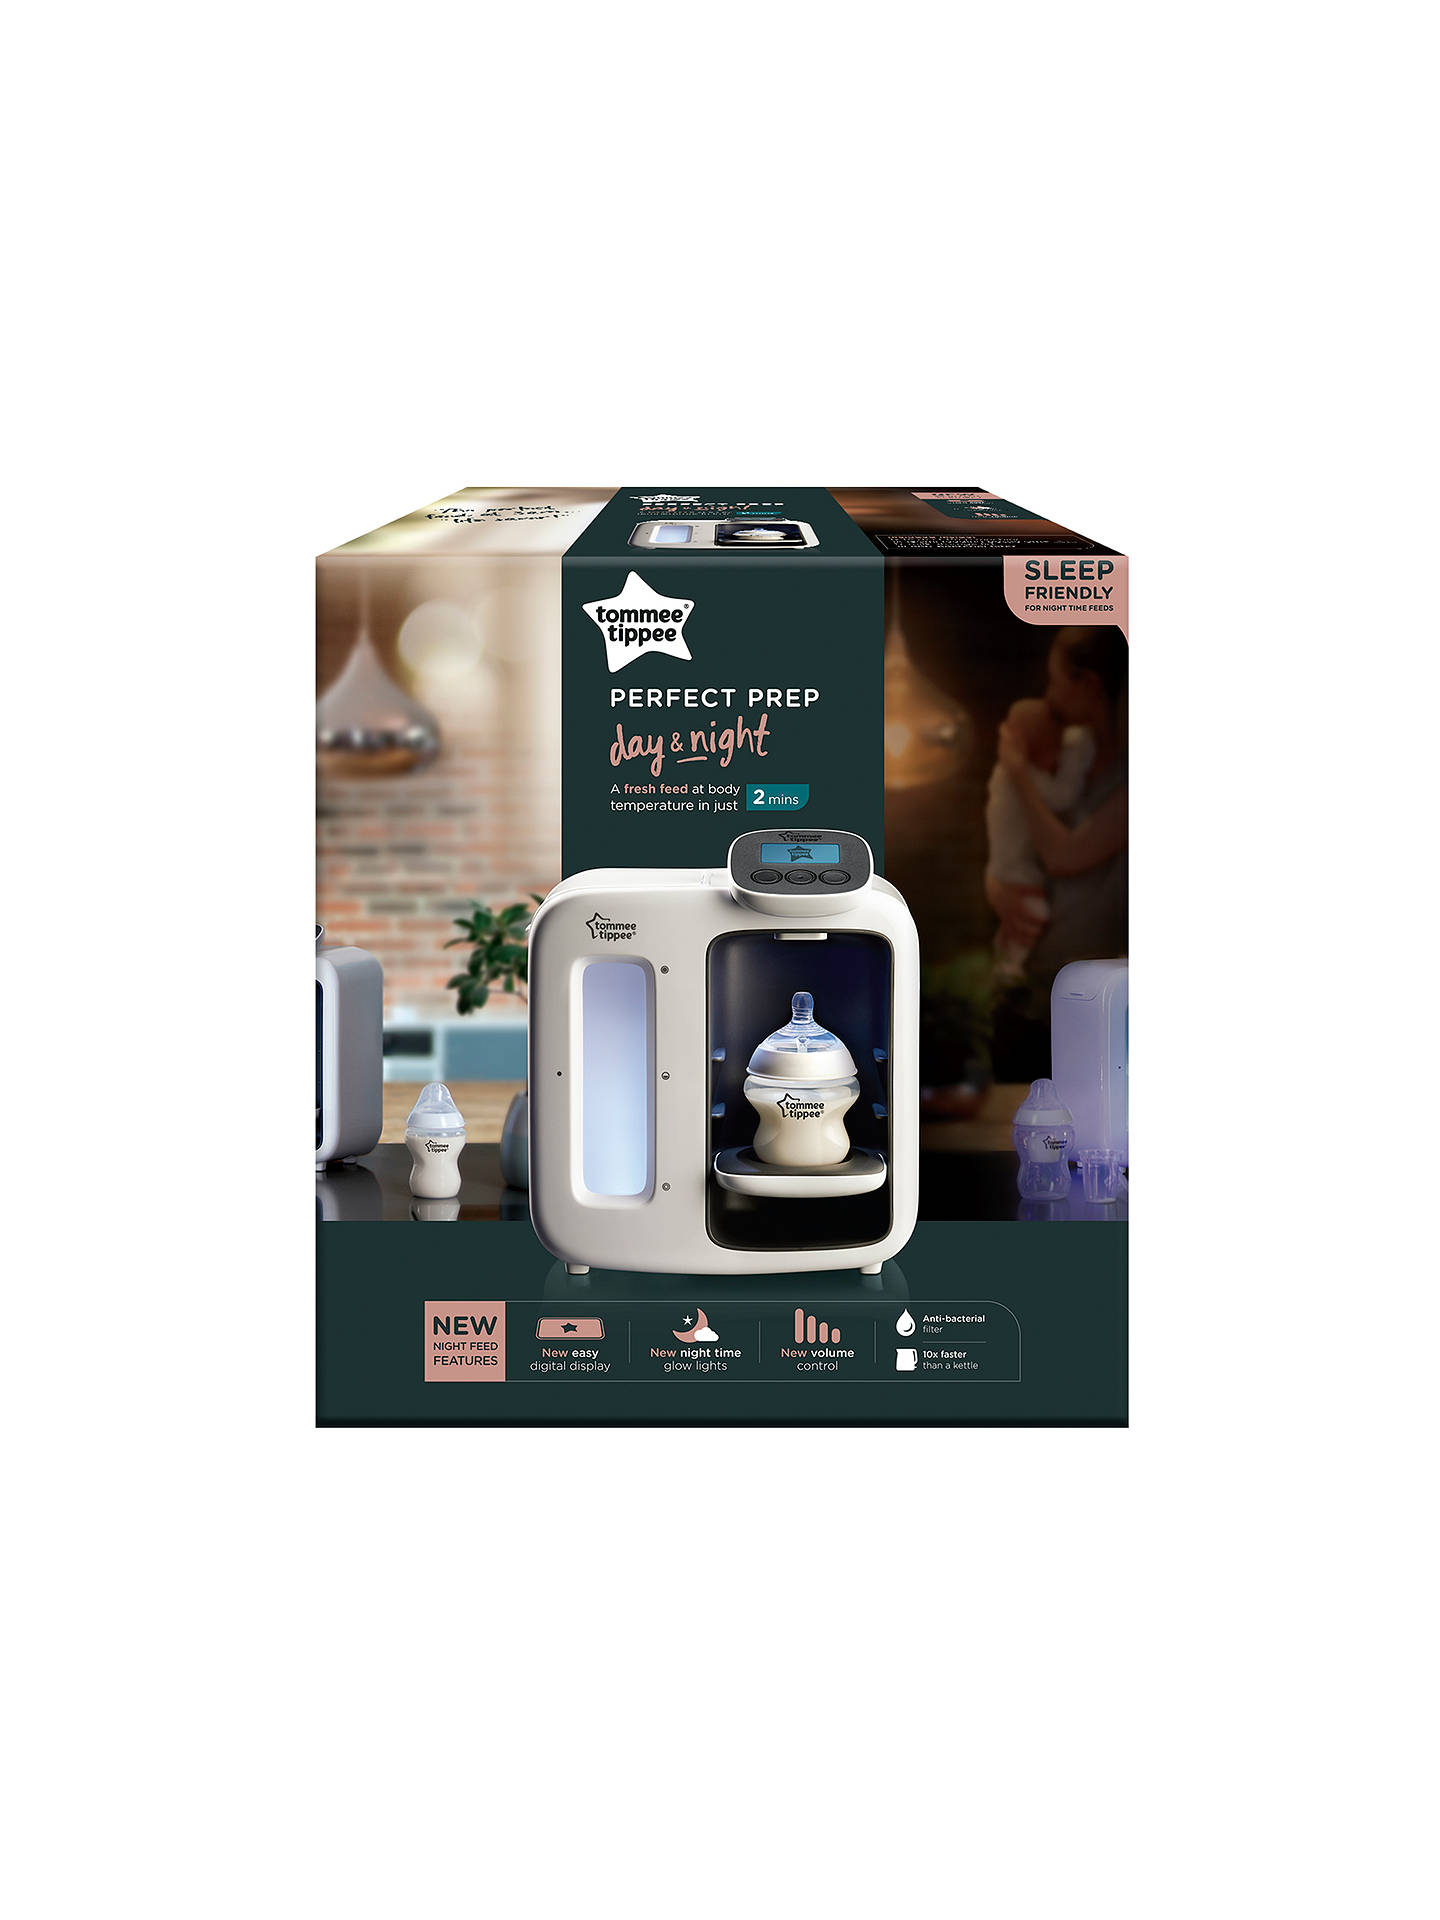 Buy Tommee Tippee Perfect Prep Day & Night, White Online at johnlewis.com